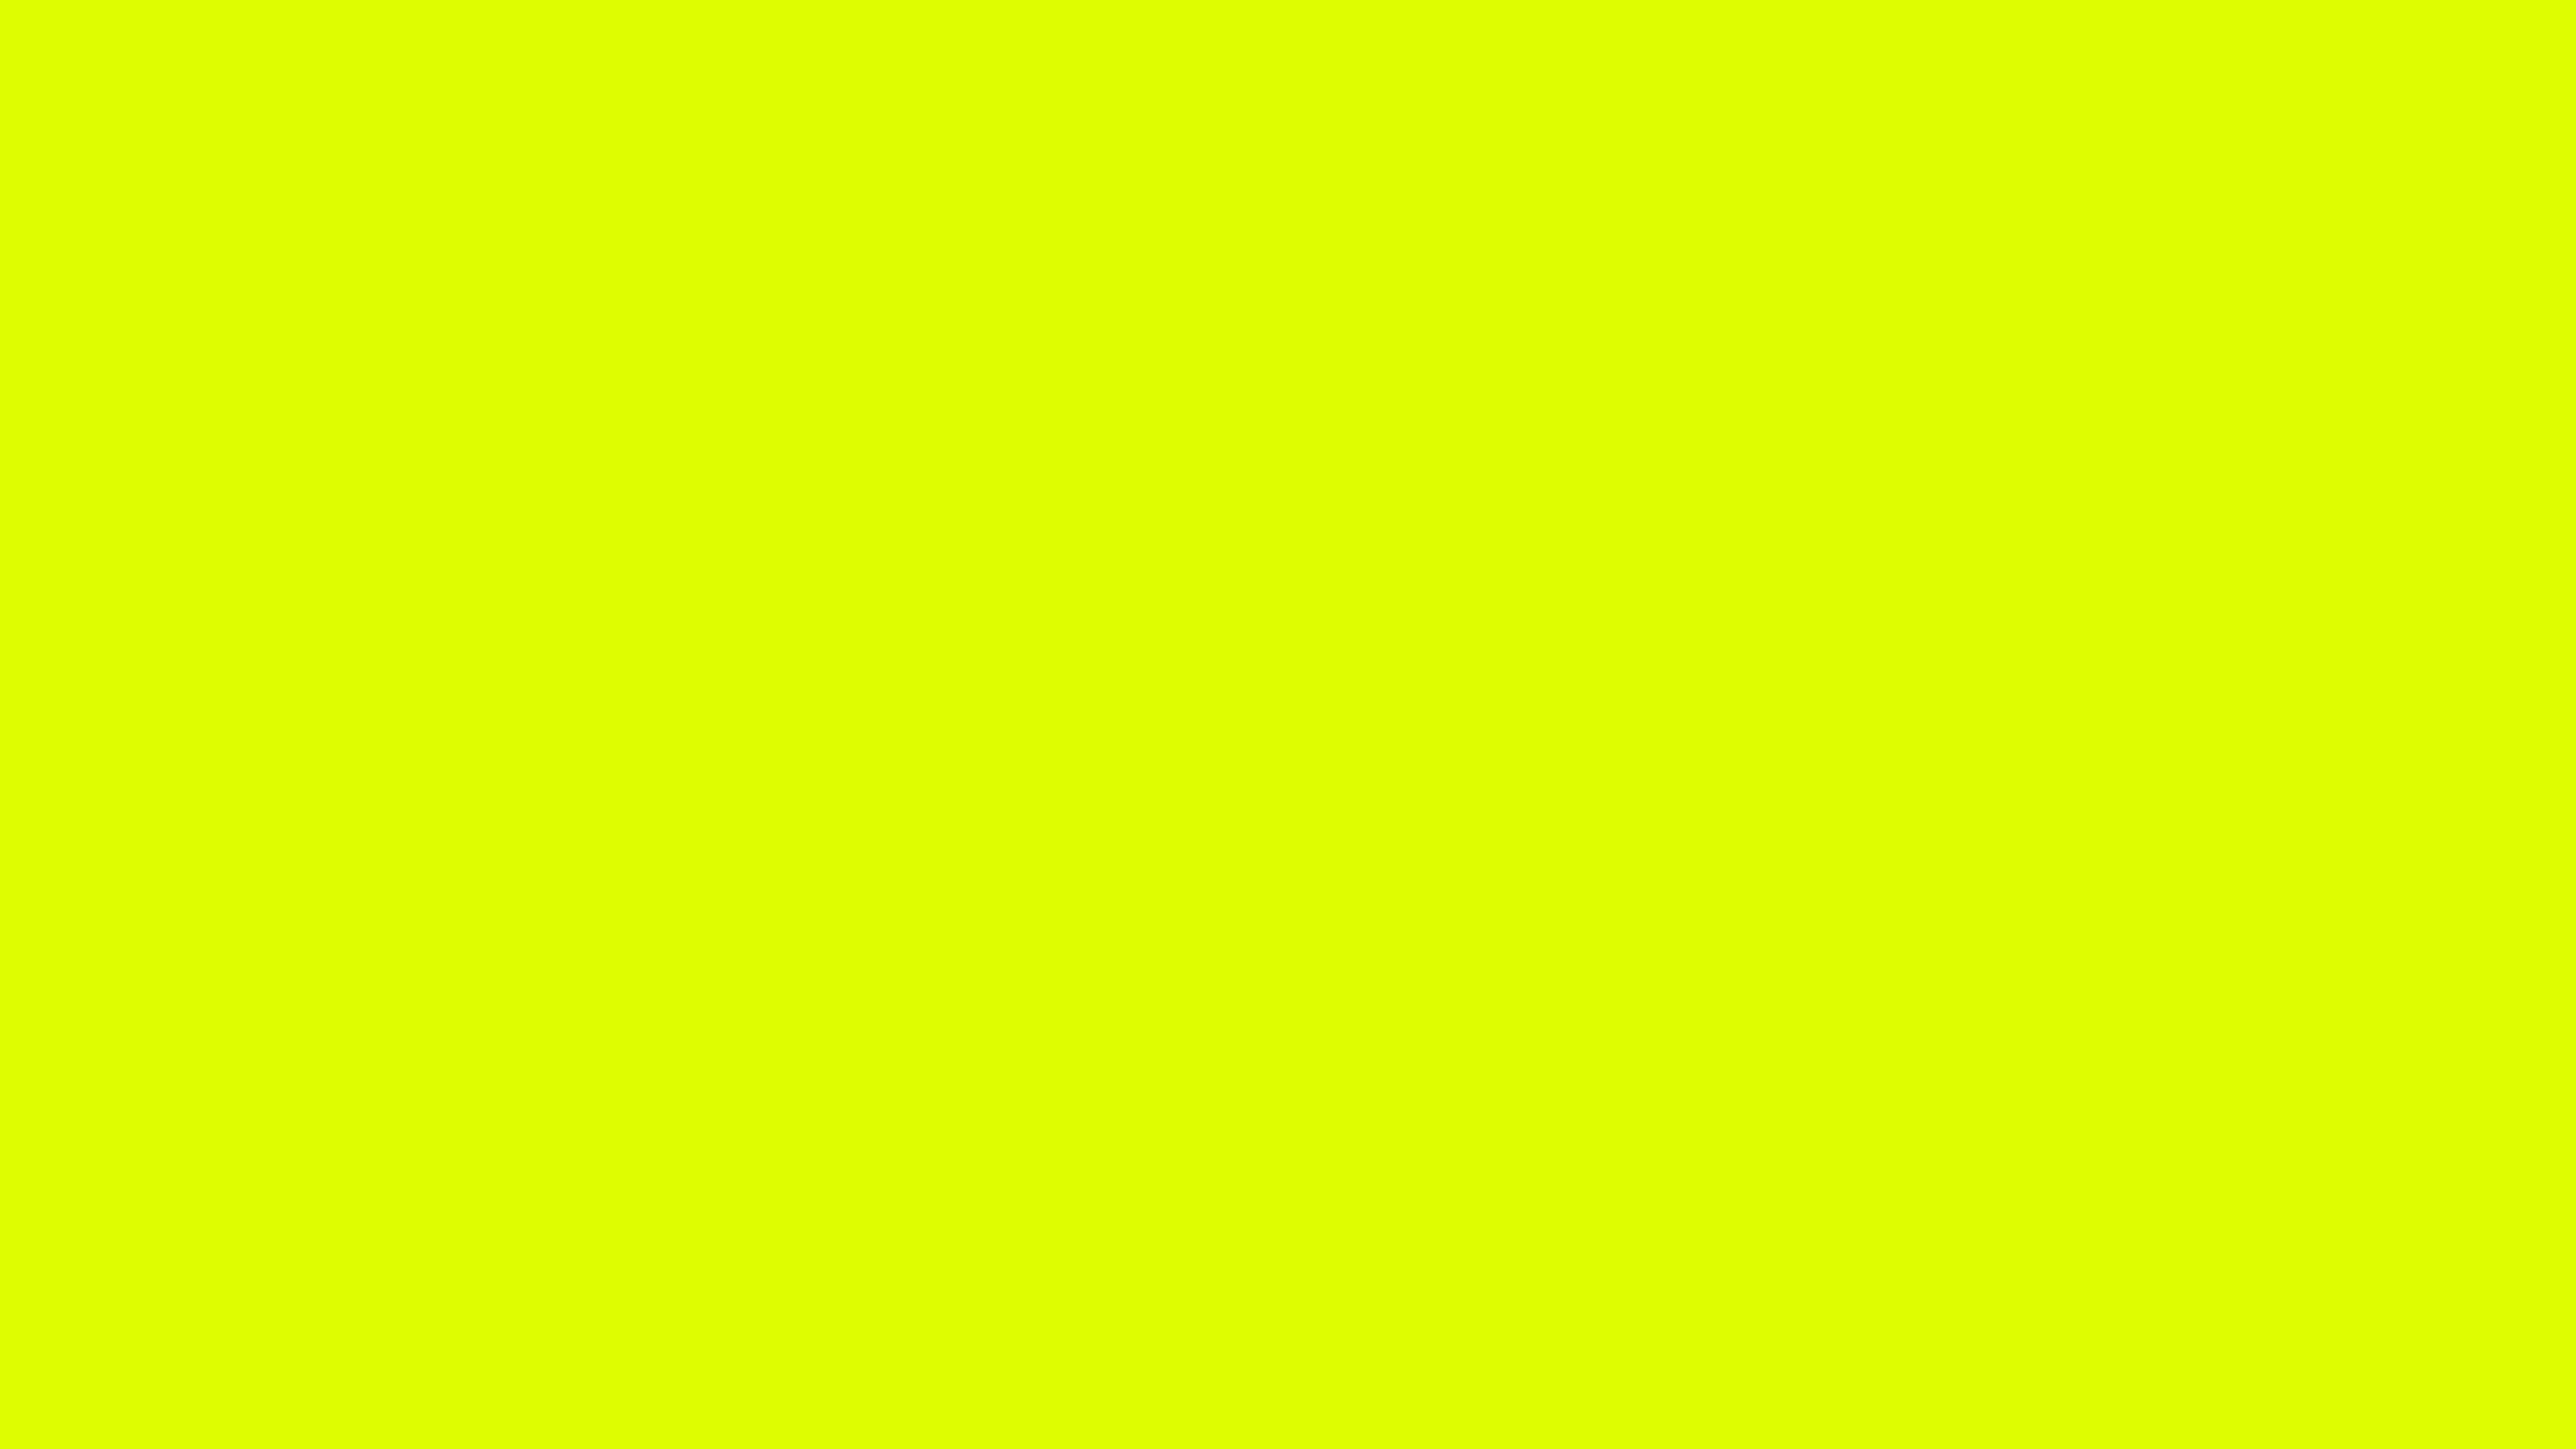 3840x2160 Chartreuse Traditional Solid Color Background